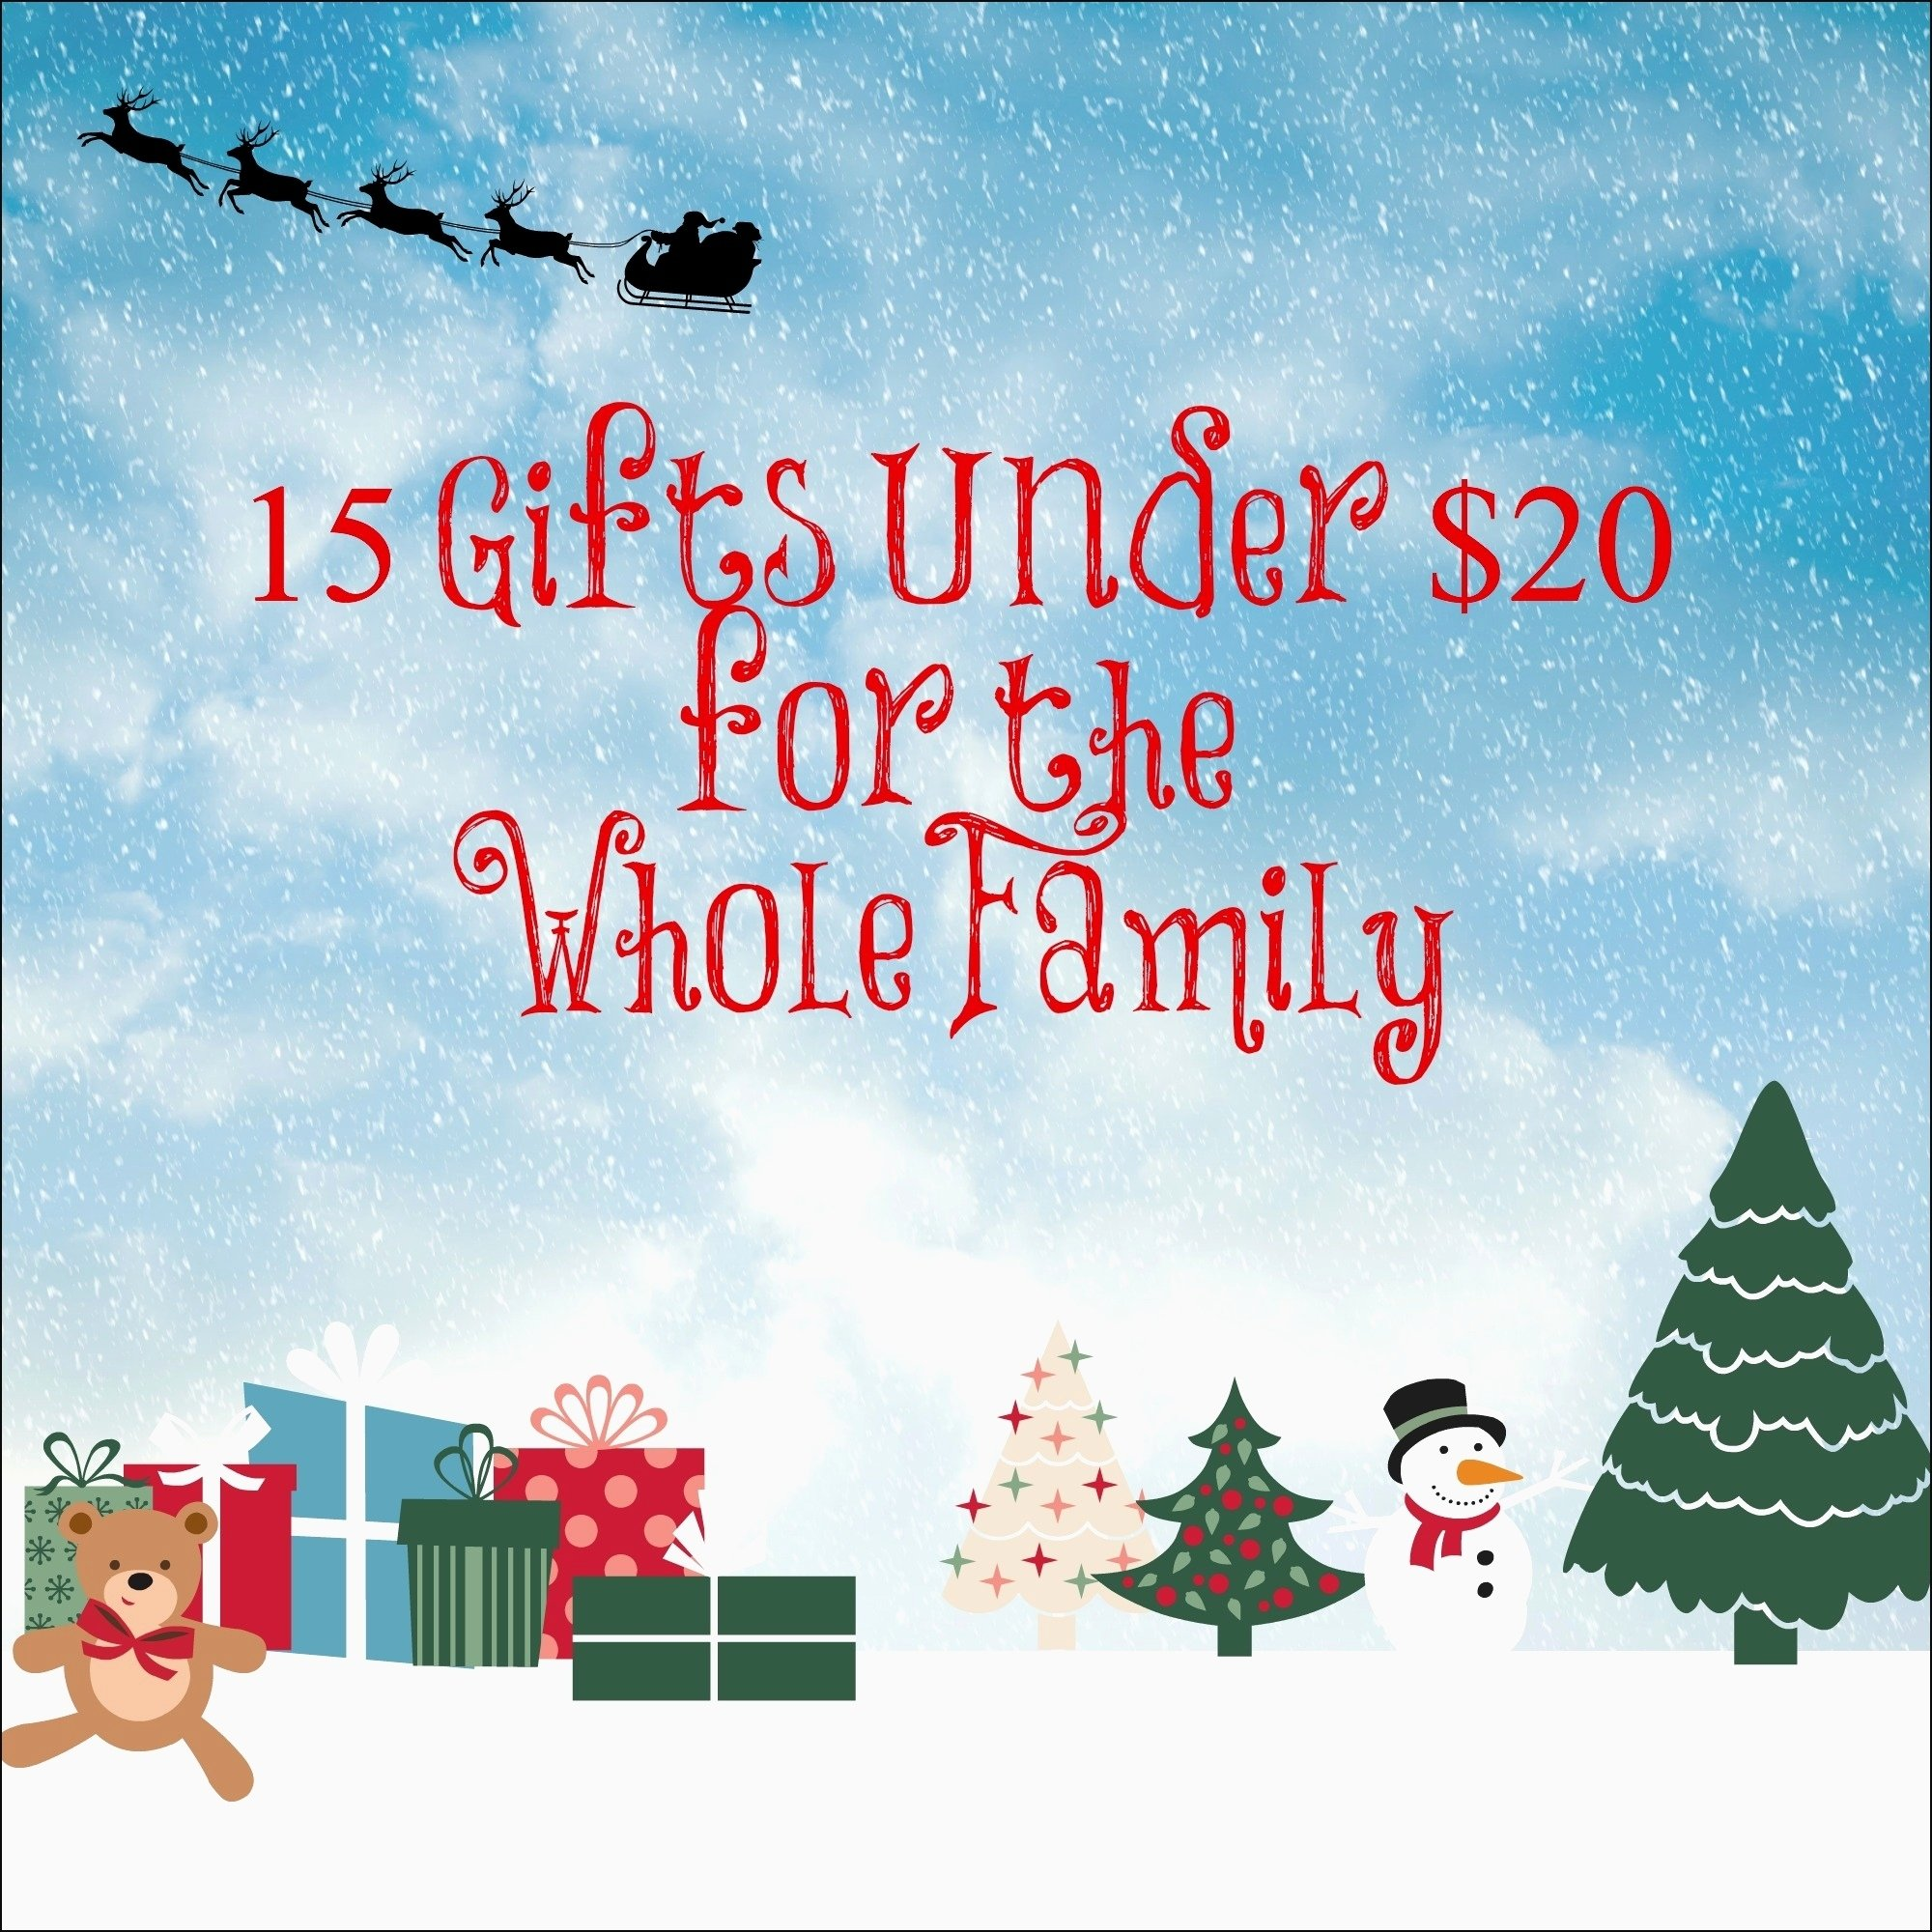 10 Ideal Whole Family Christmas Gift Ideas christmas christmas gifts under 5 elegant the best christmas gift 2020